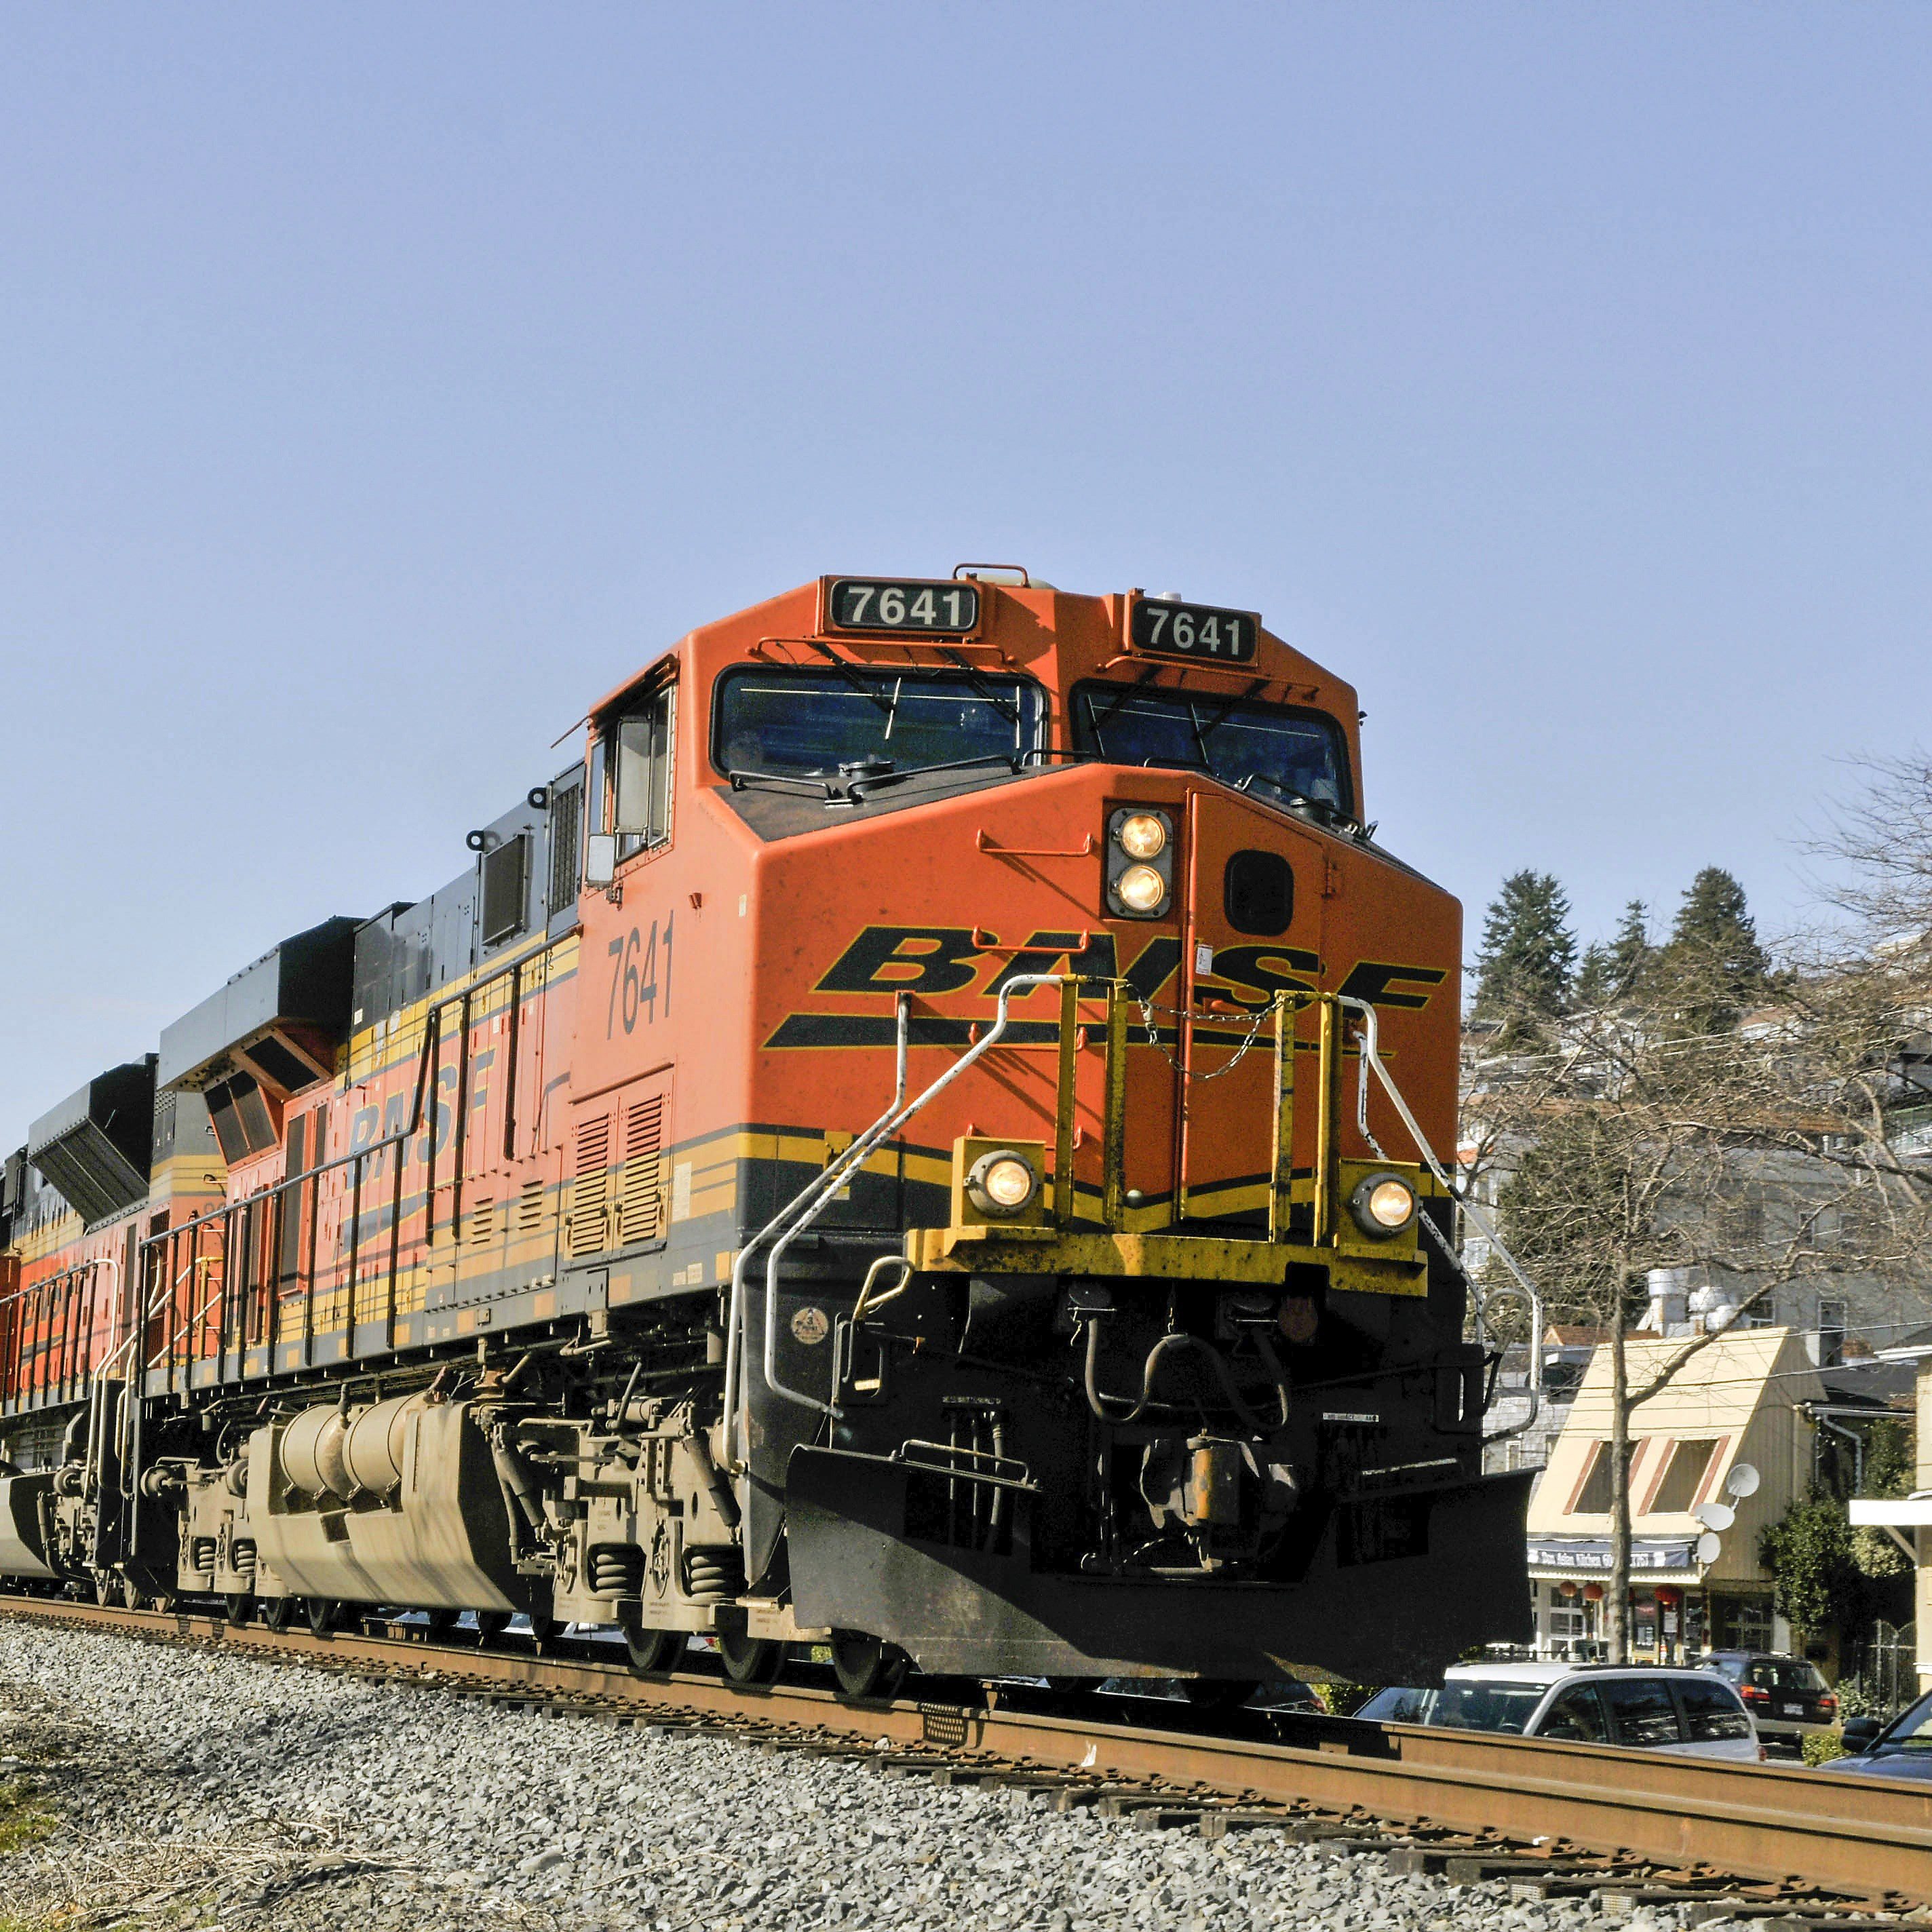 A Burlington Northern Santa Fe Corp. coal train on a scheduled run from Tsawwassen, British Columbia,Canada to Seattle this past March.